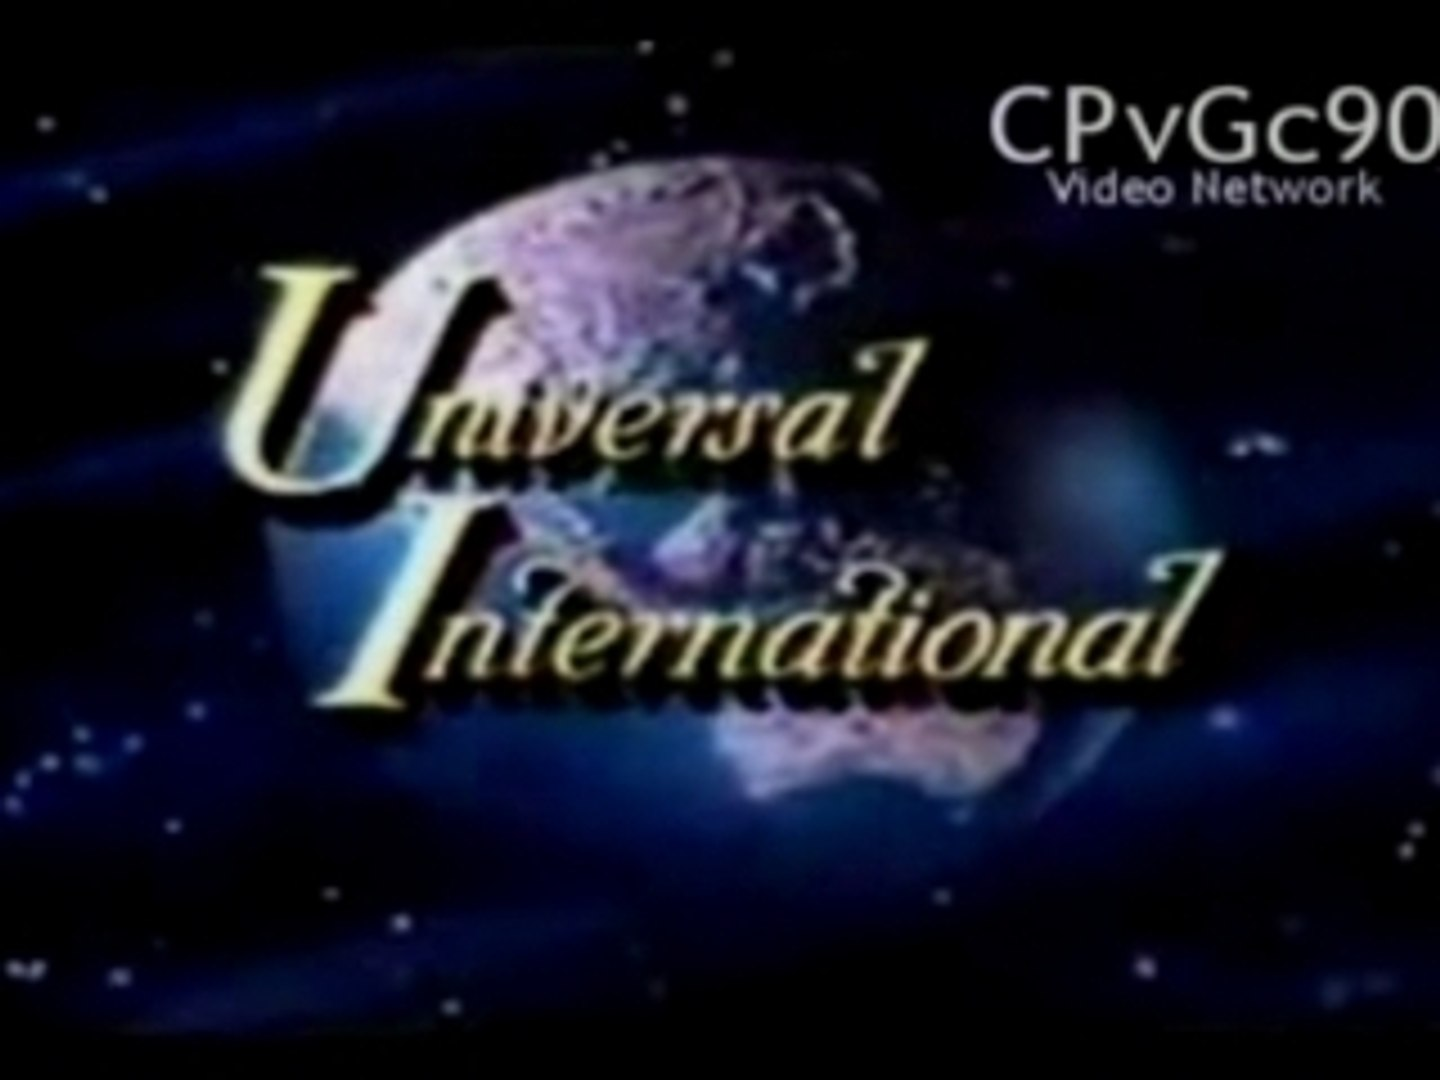 Universal International (It came from Outer Space)